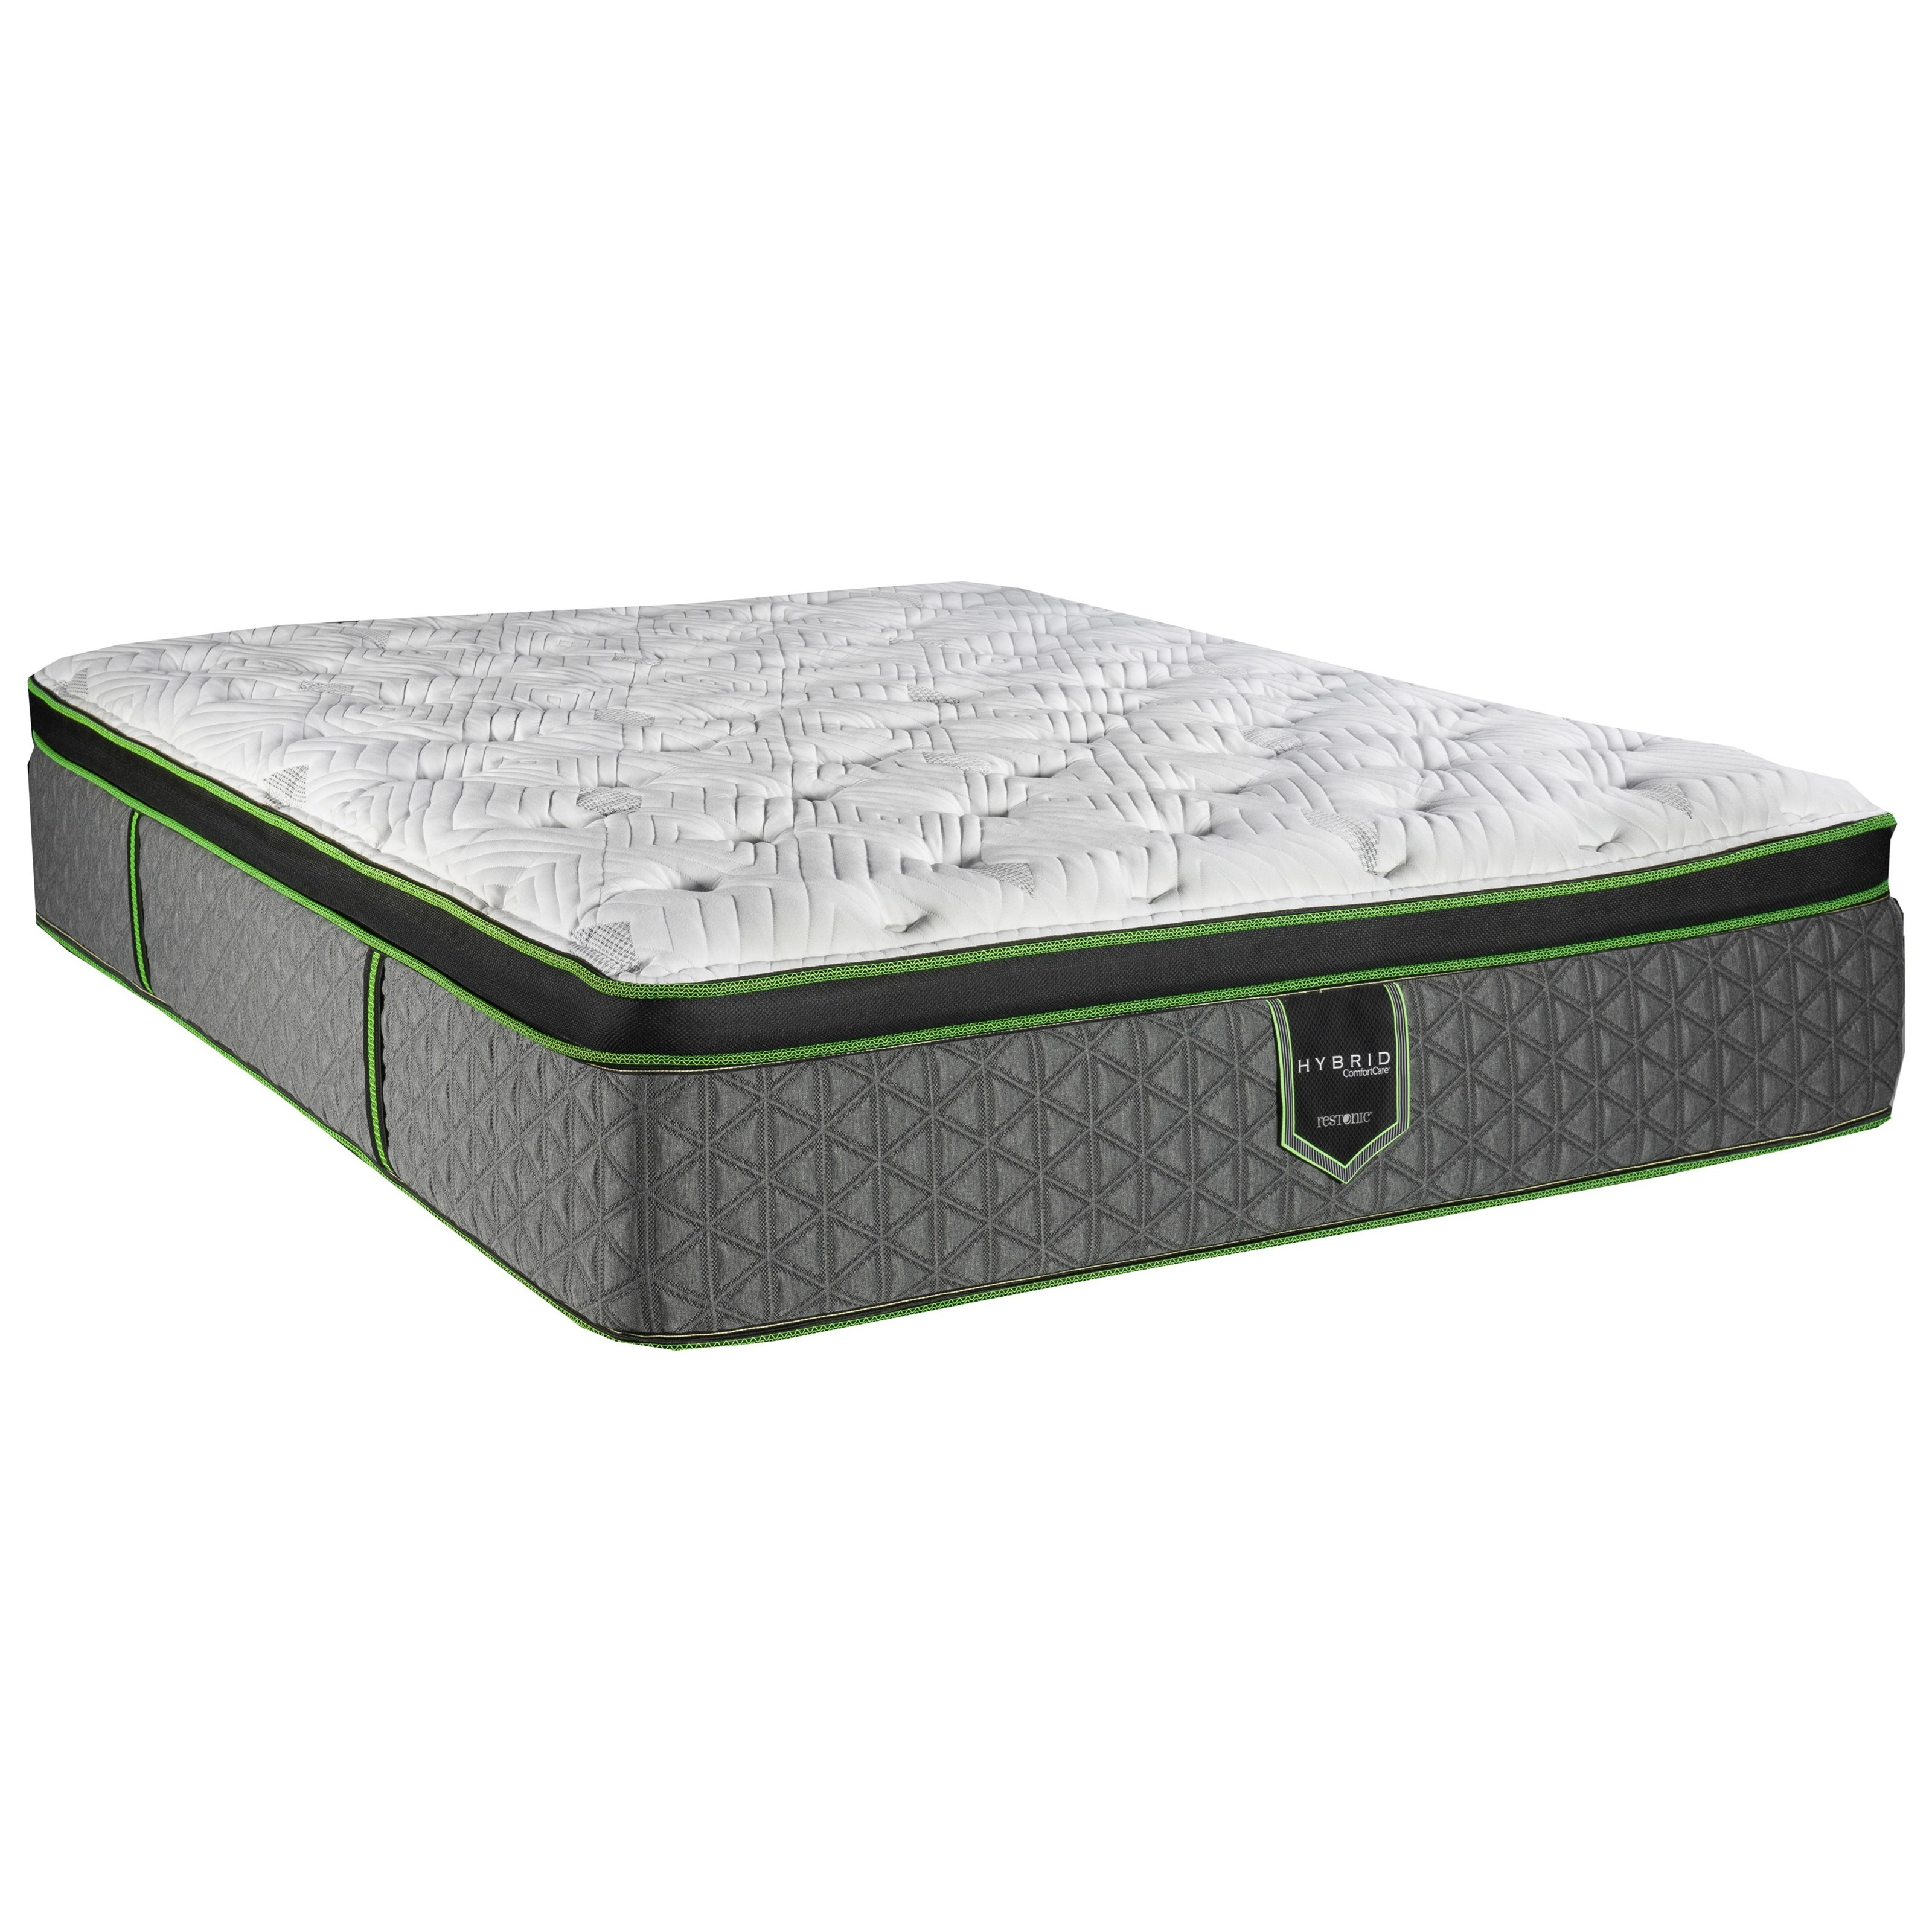 "Queen 15"" Plush Hybrid Euro Top Mattress"